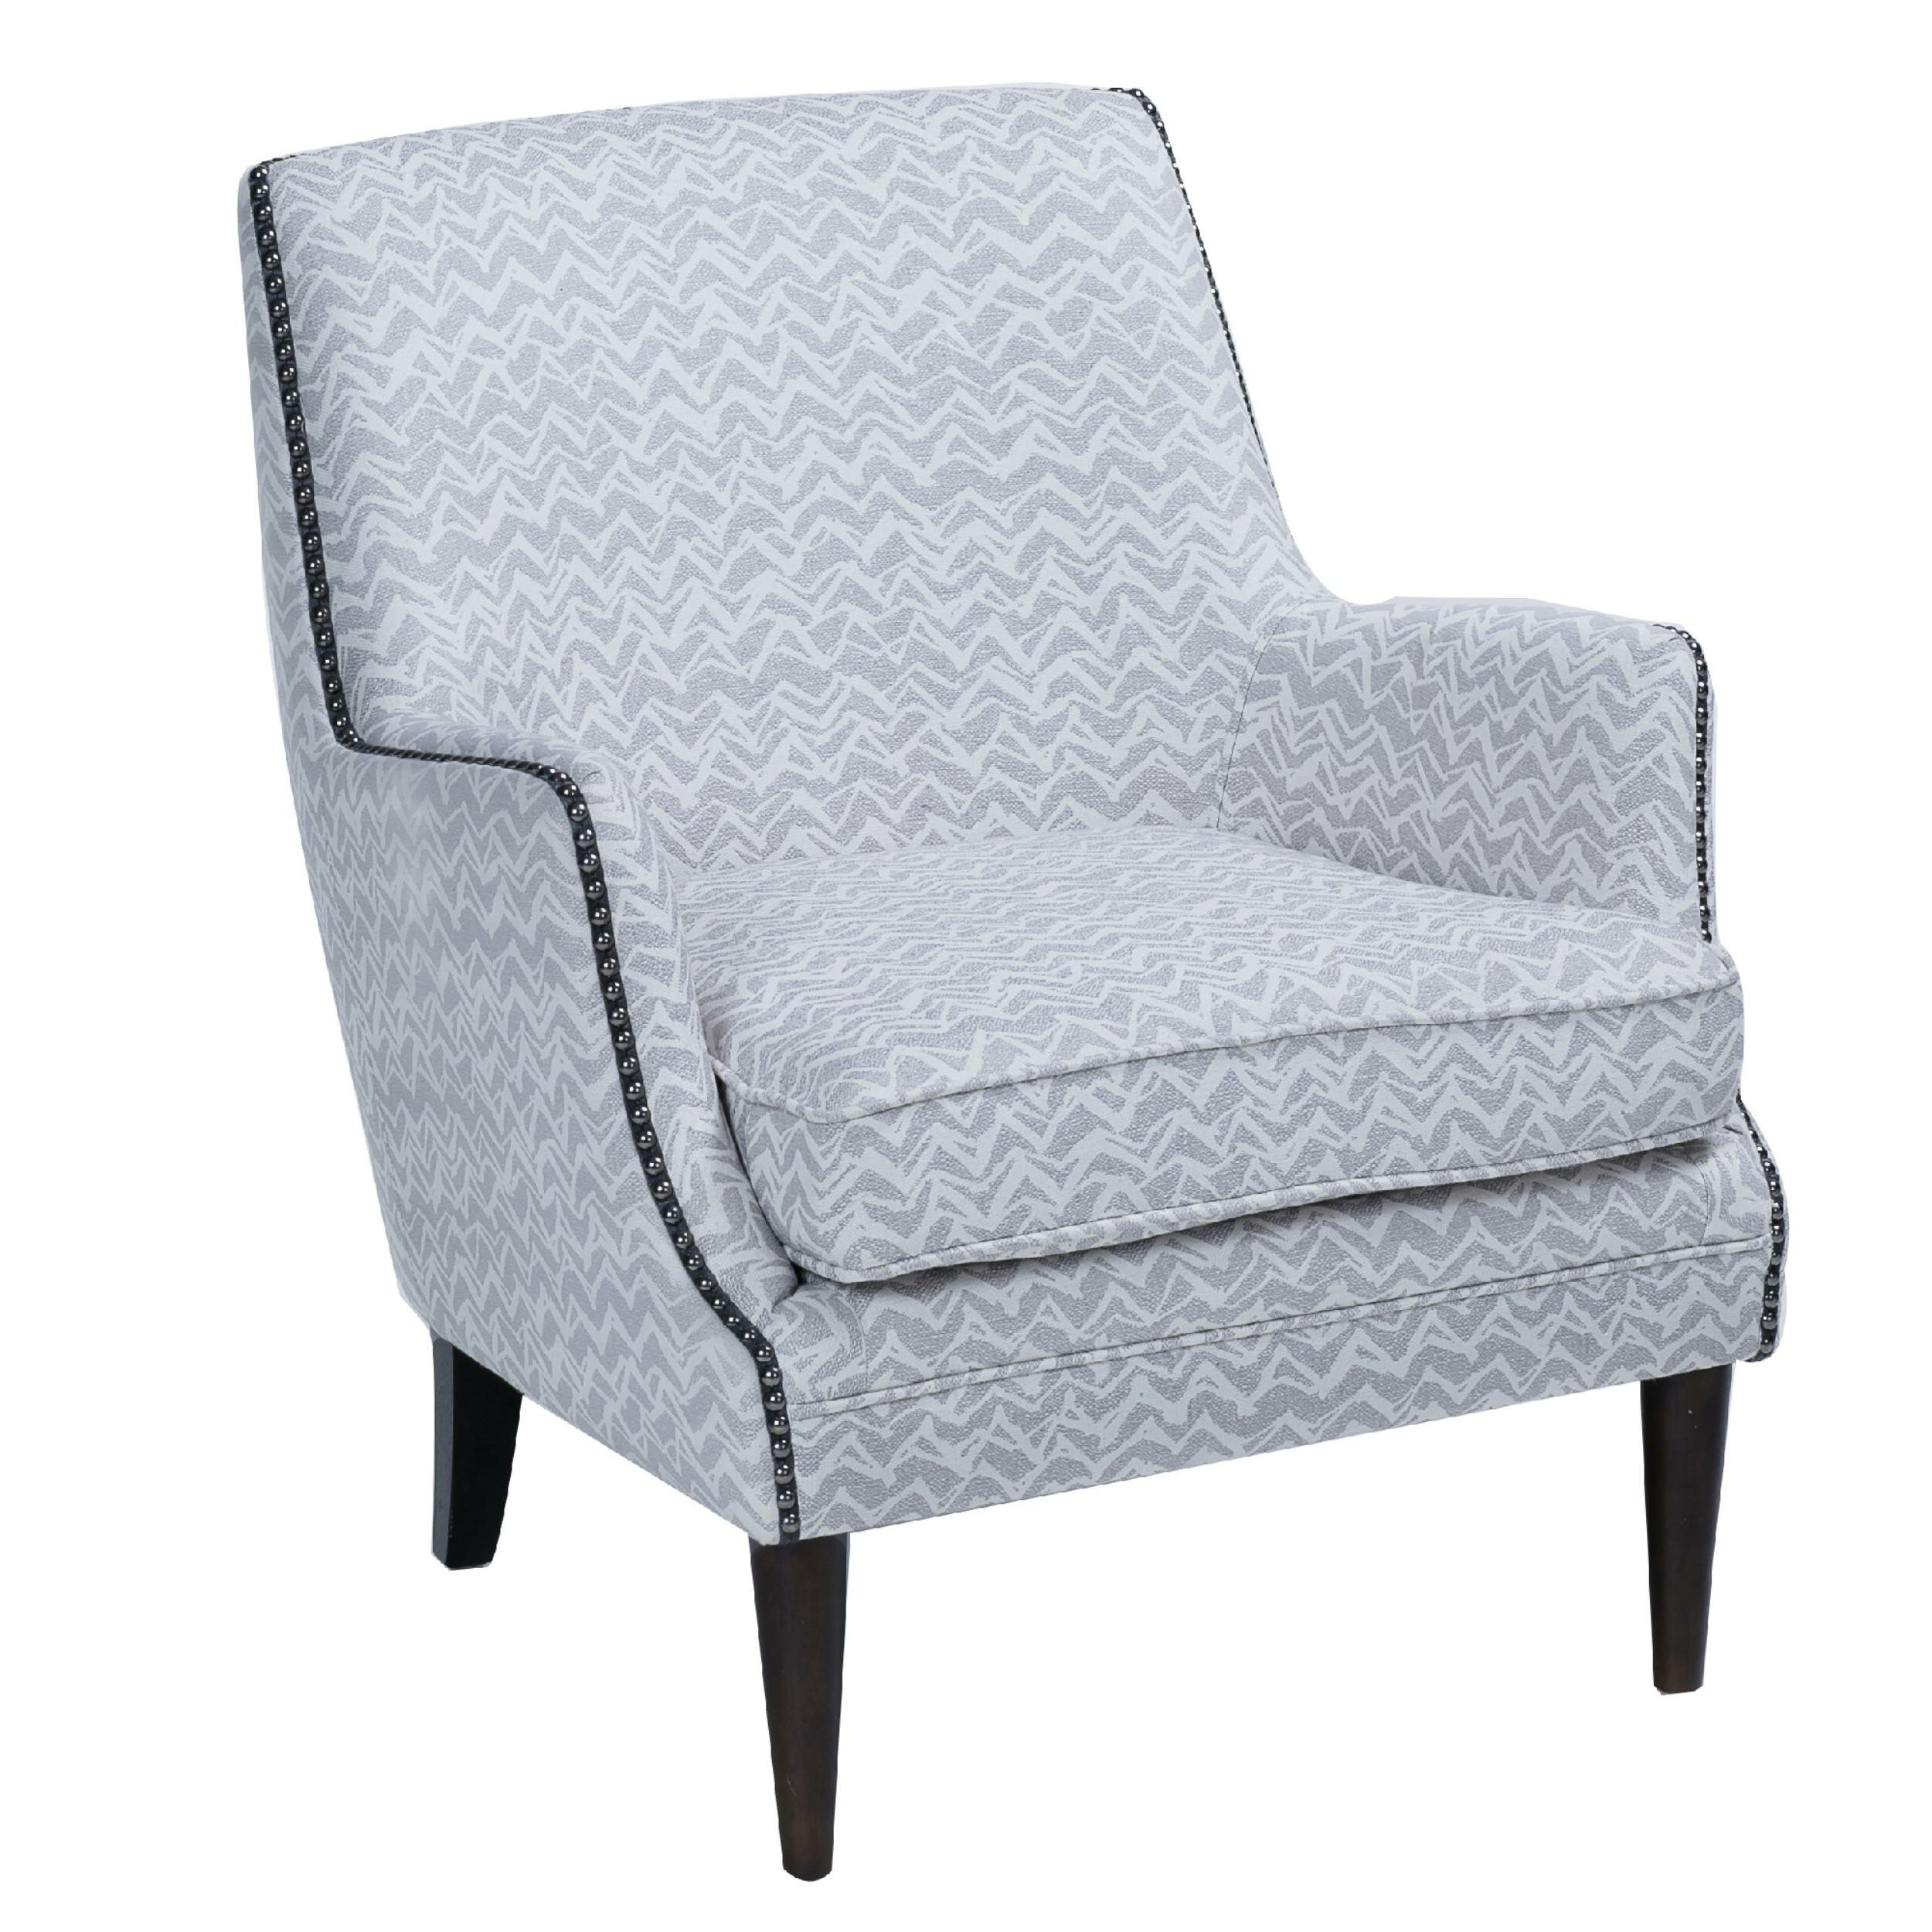 Enjoyable High Back Accent Chair With Patterned Fabric Upholstery Grey And Brown Dailytribune Chair Design For Home Dailytribuneorg